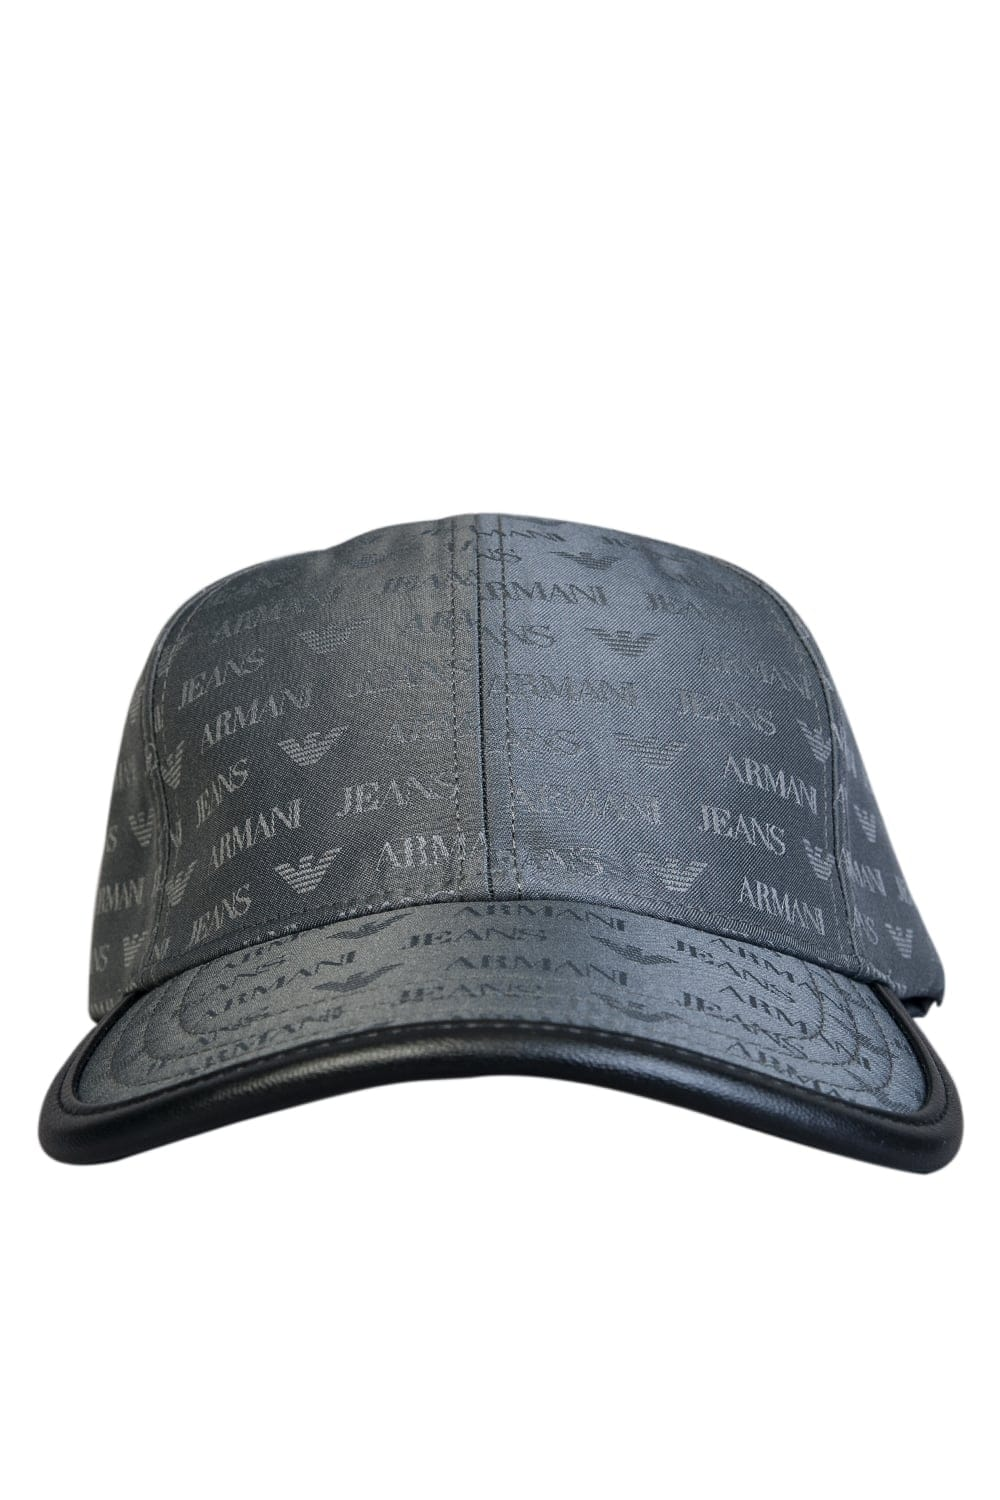 678b8060c82a9 Armani Jeans Hat 934500CC993 - Accessories from Sage Clothing UK